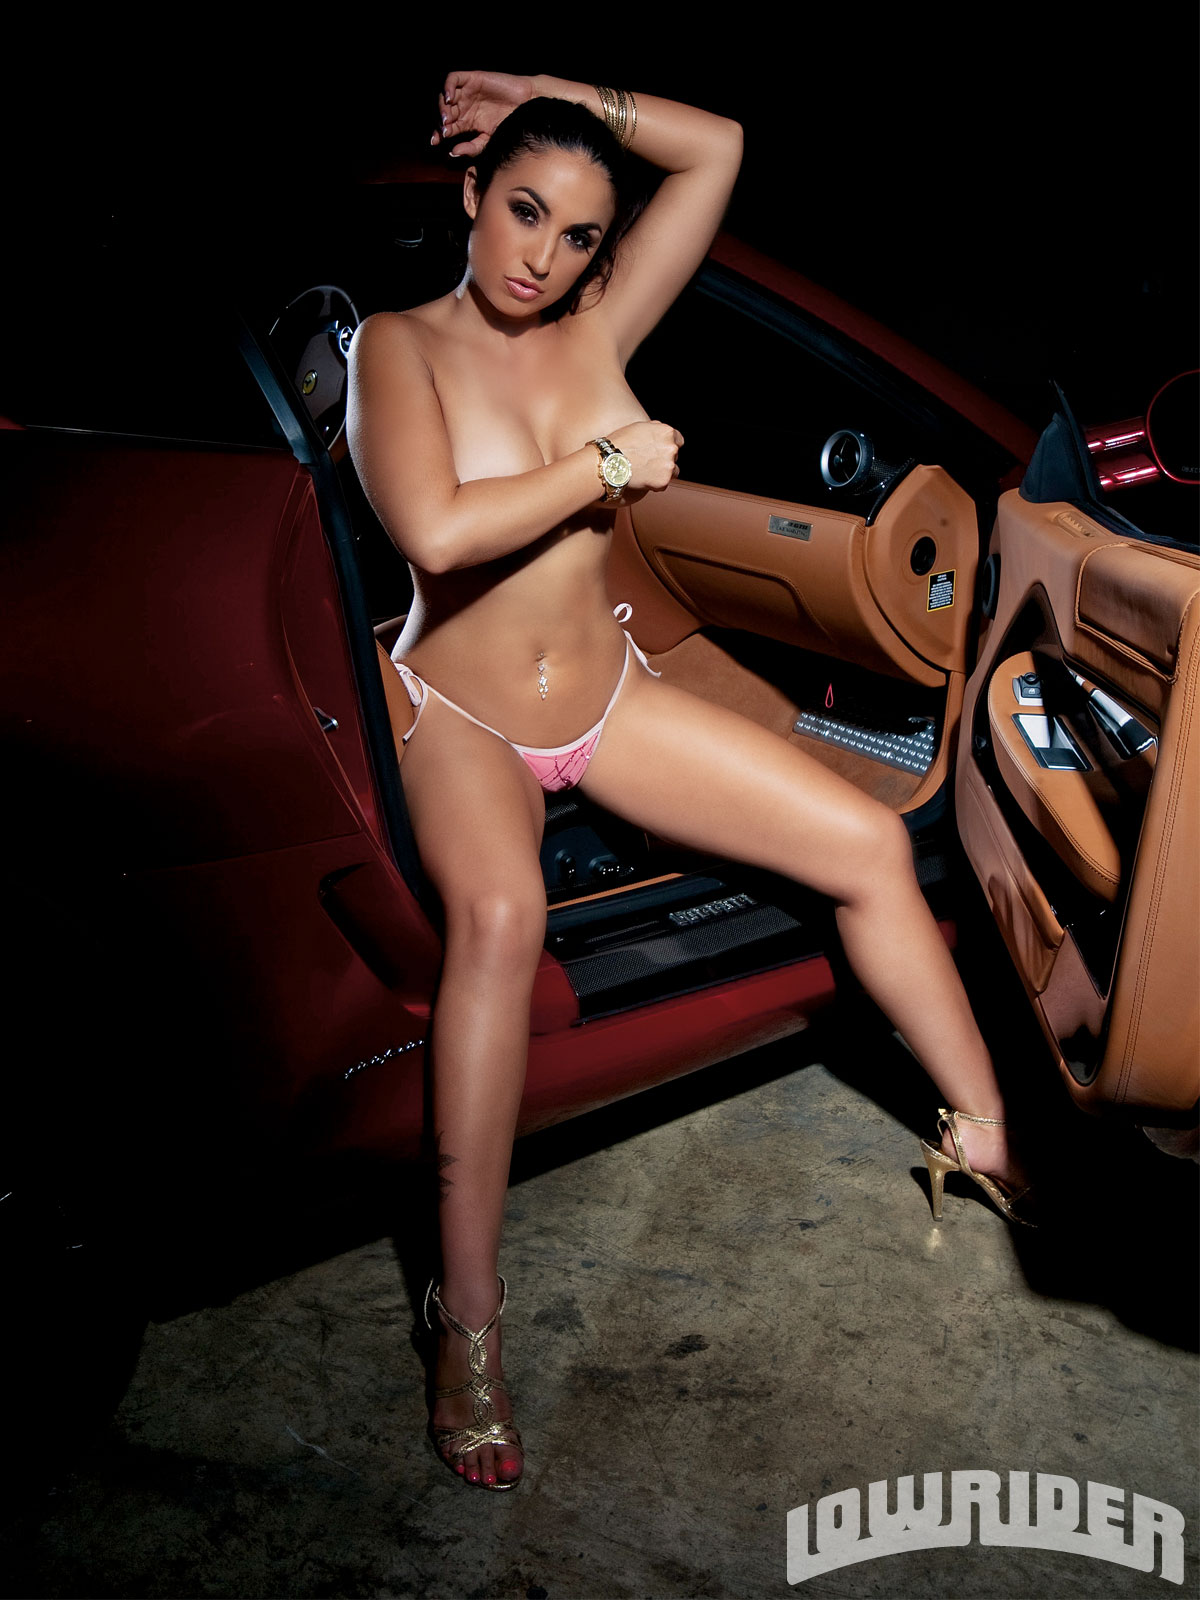 Naked lowrider hot model